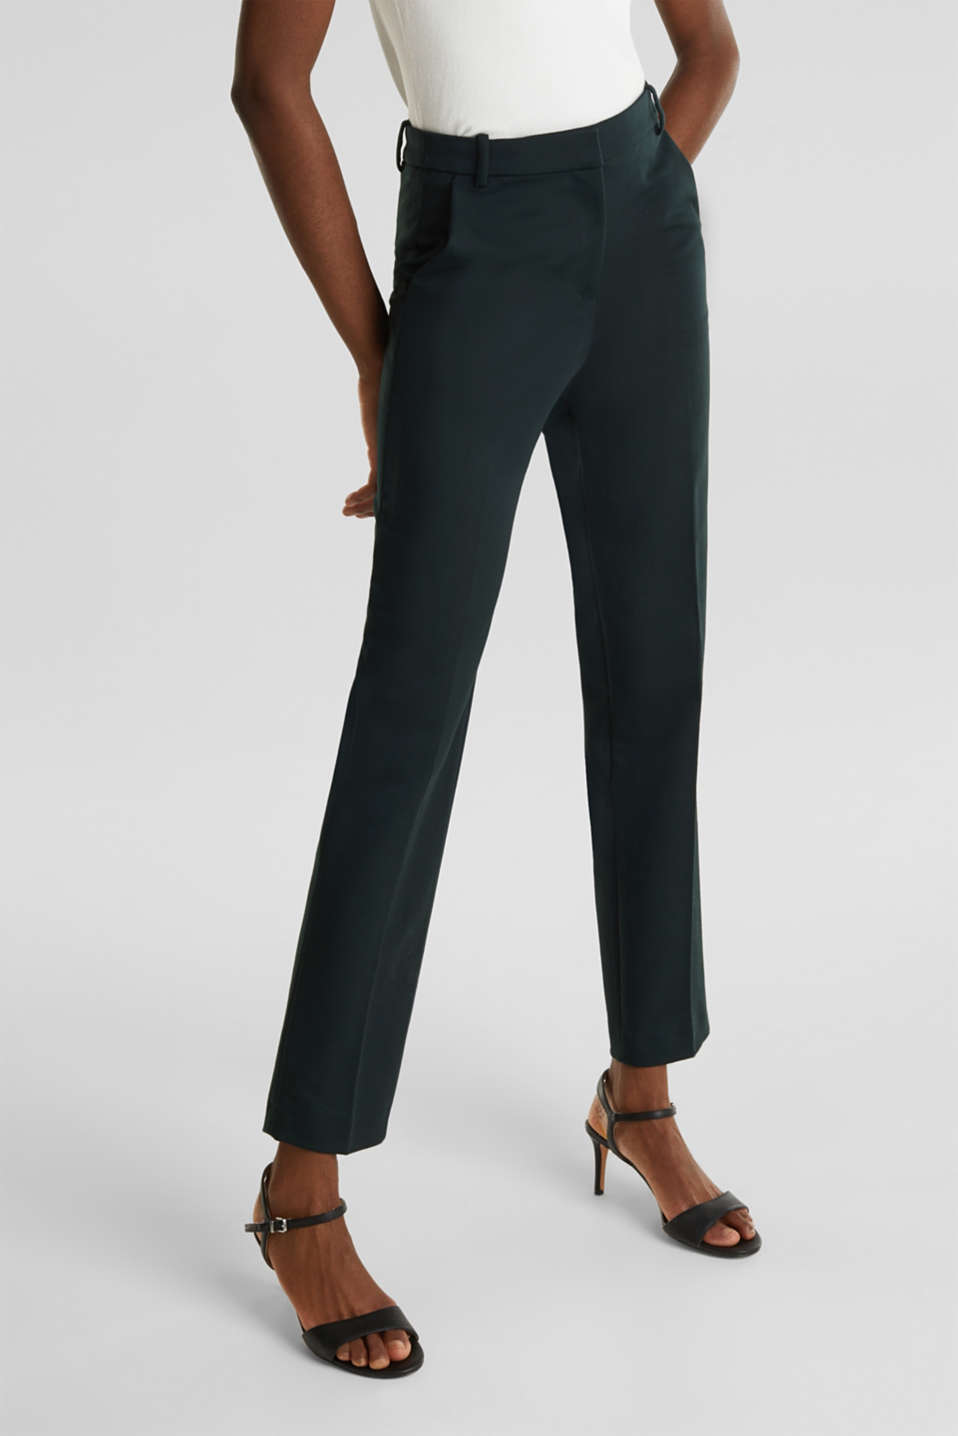 Stretch trousers with pressed pleats, DARK TEAL GREEN, detail image number 7